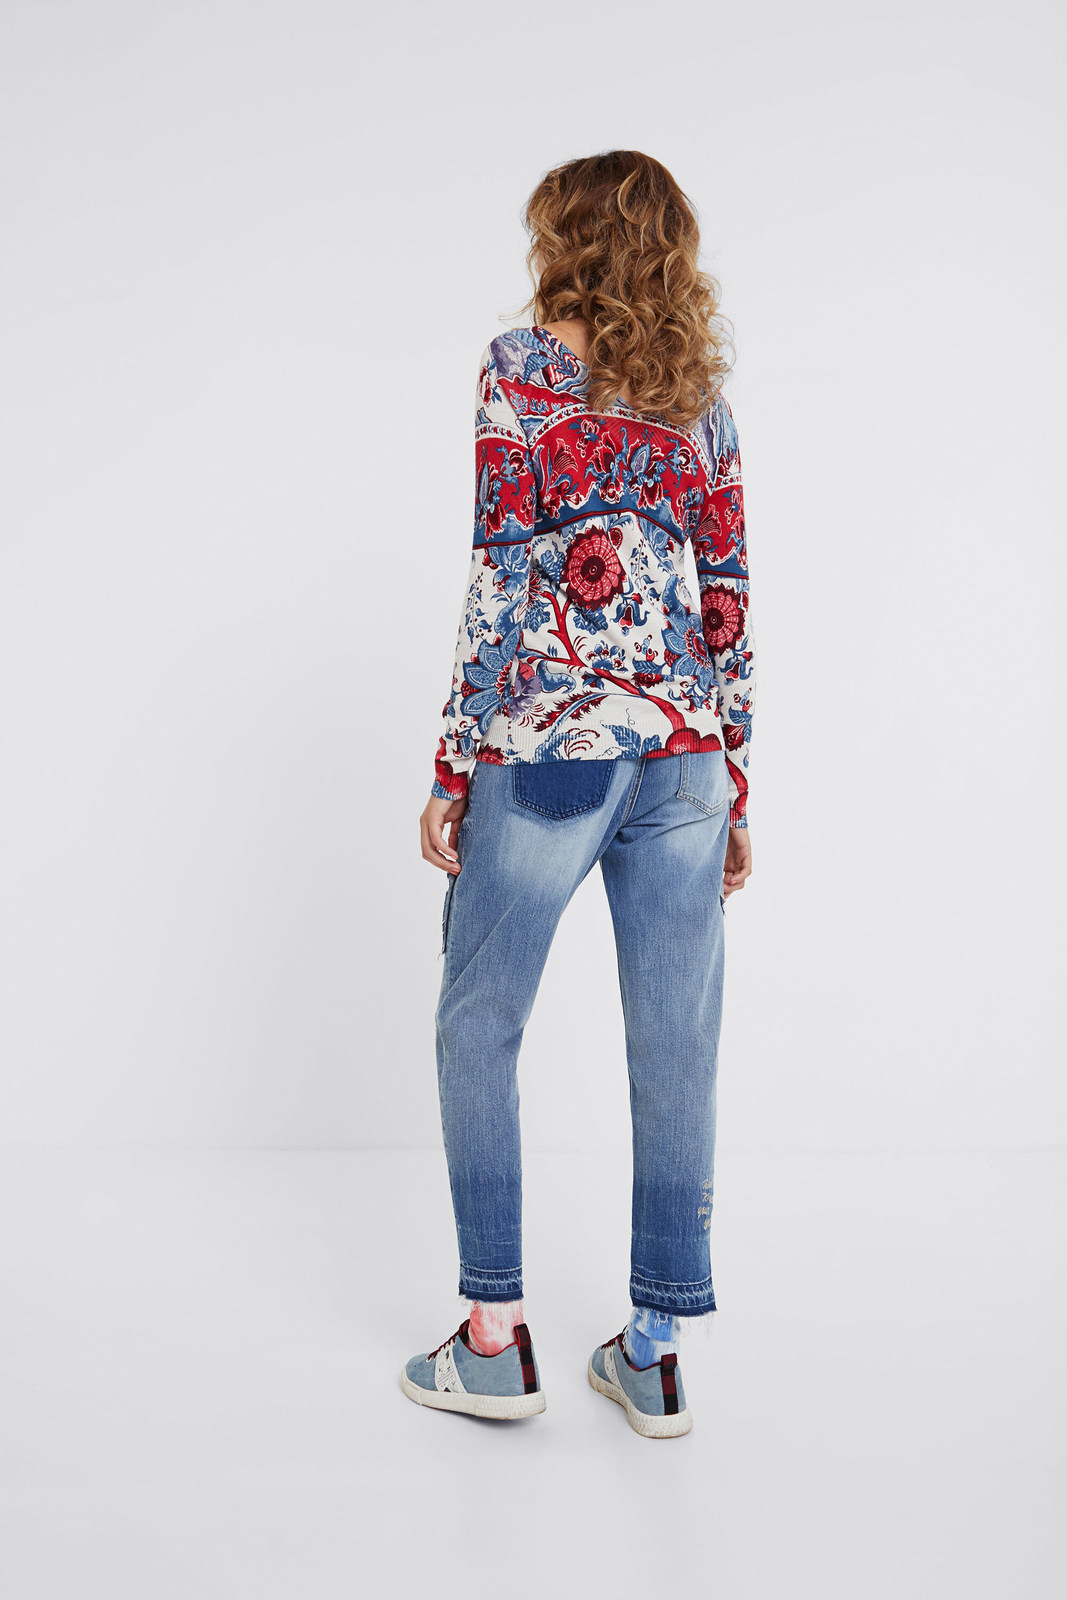 Desigual pulover colorat Jers Barrie